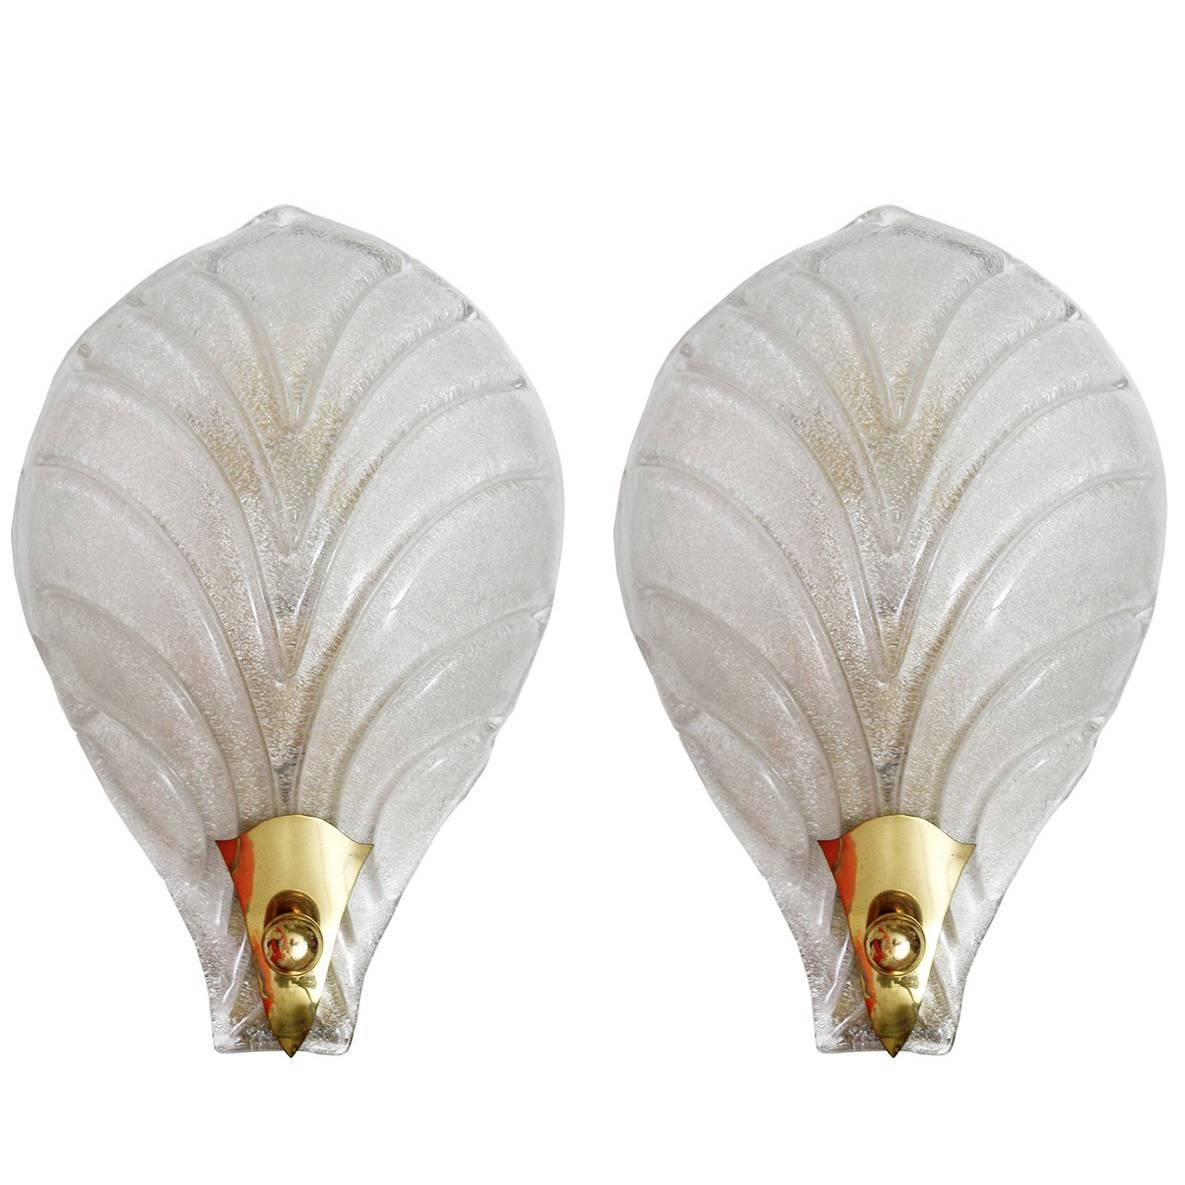 Pair of Large Murano Glass Wall Lights Sconces, 1960s